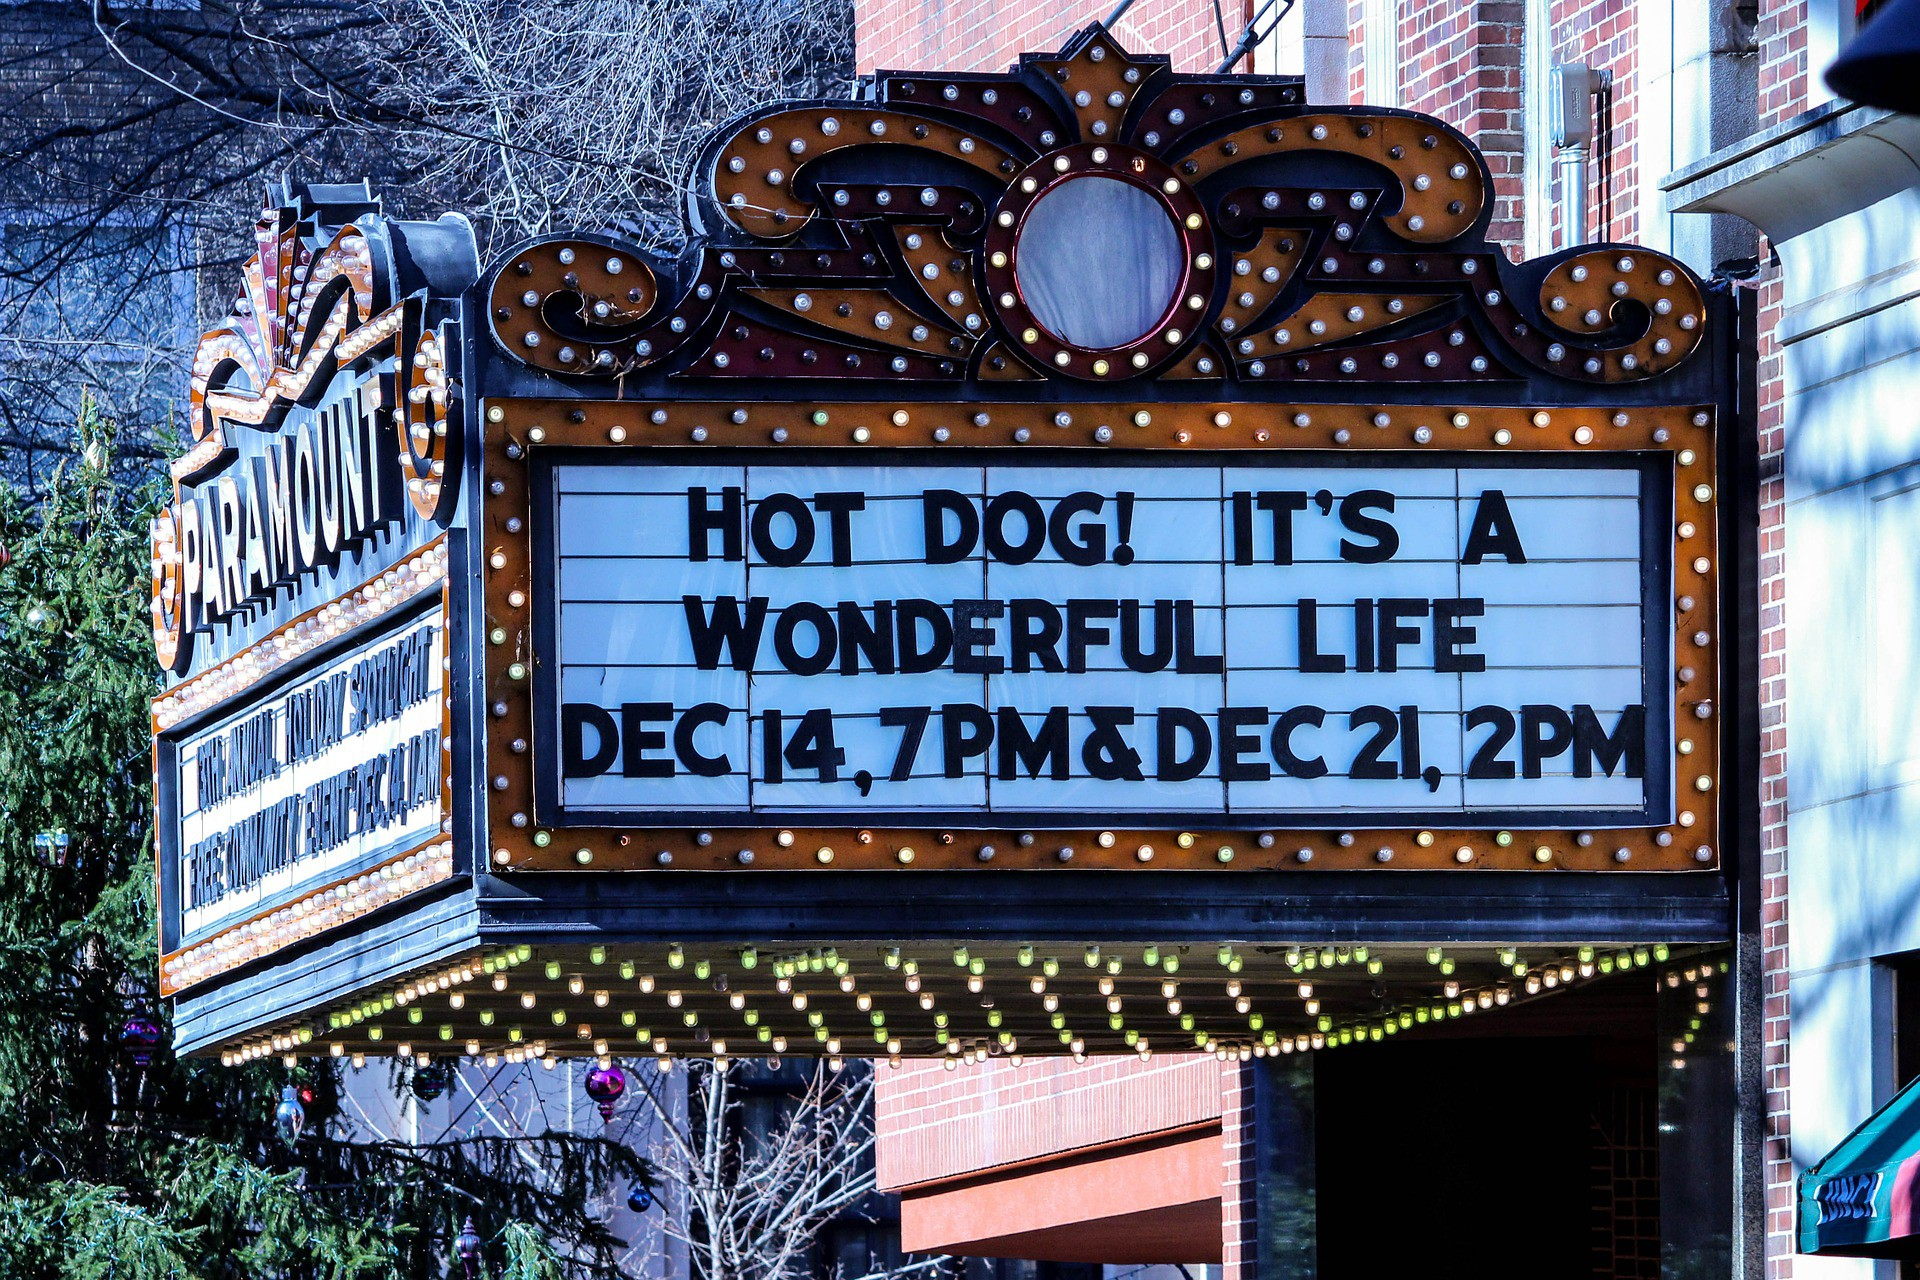 """A theatre marquee reads """"Hot dog! It's a Wonderful Life"""" and the dates and times when it will appear there."""